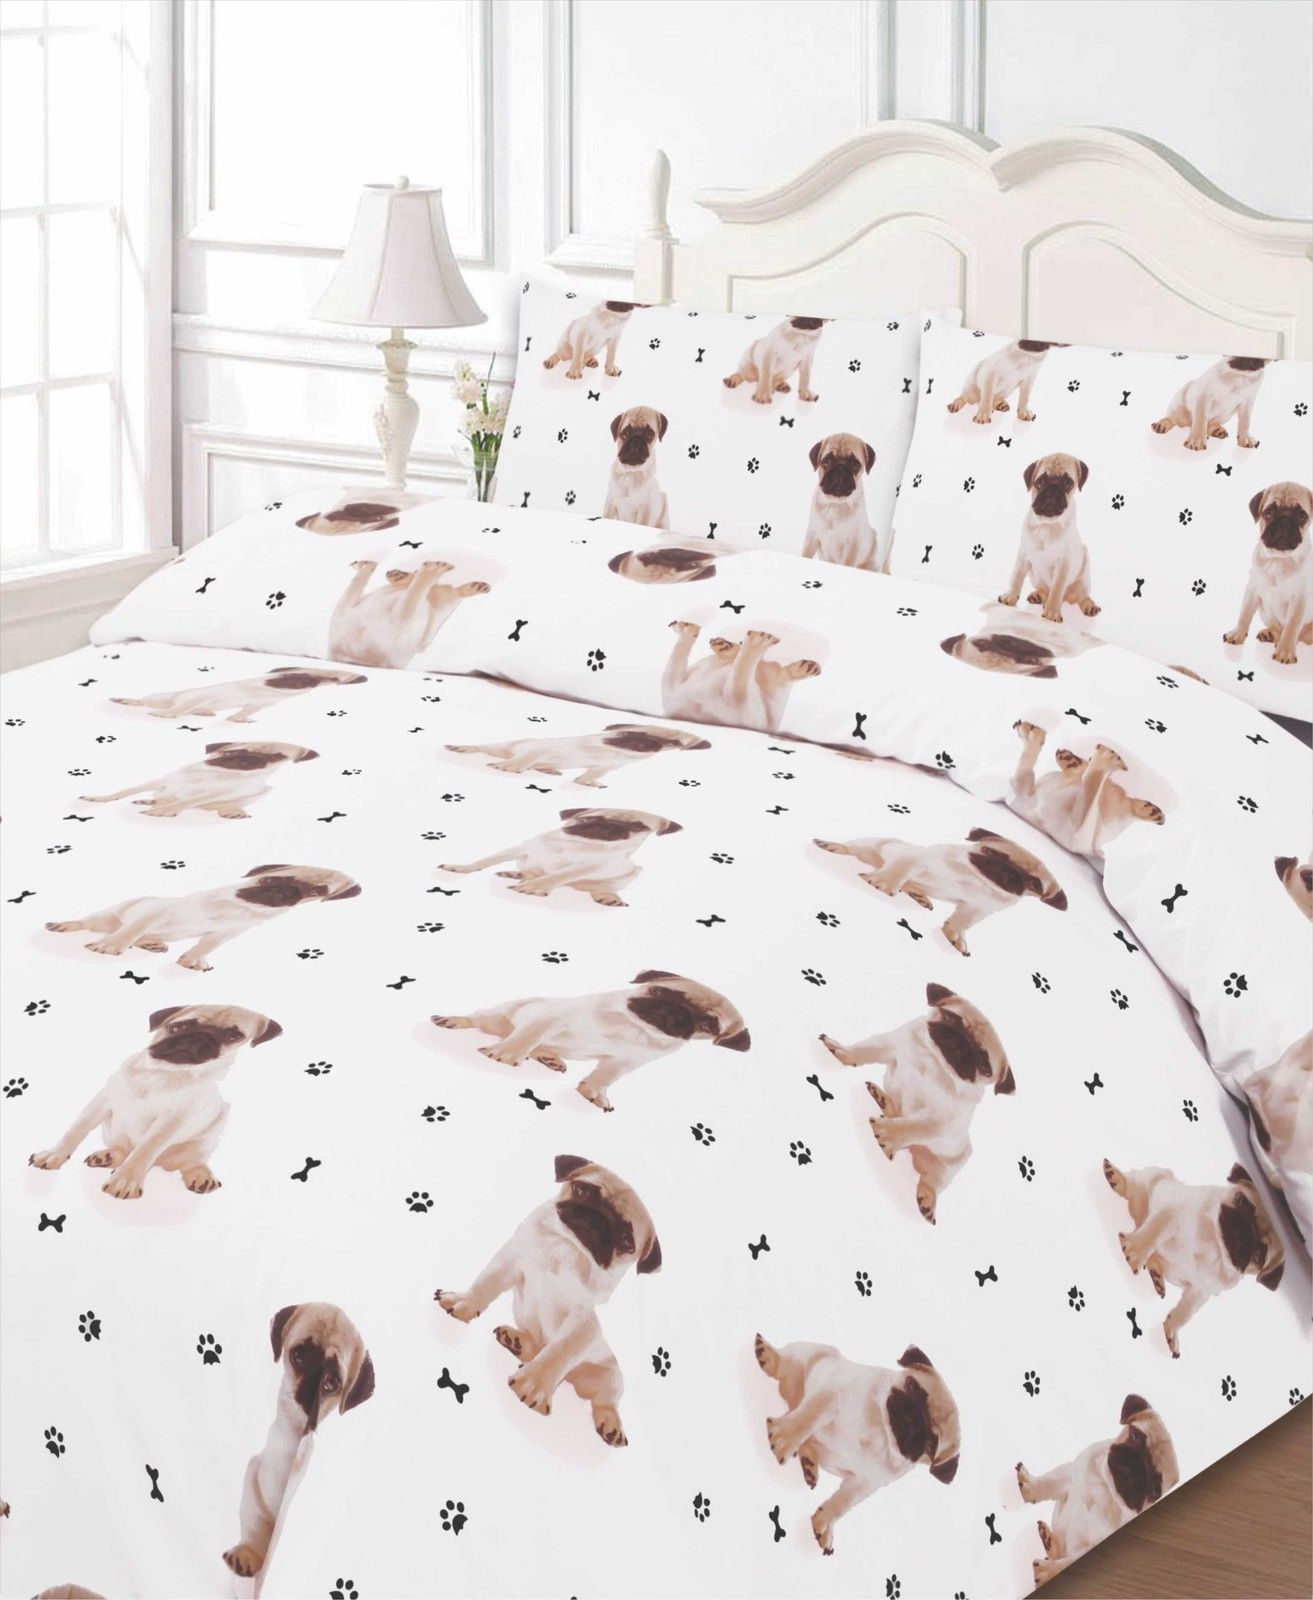 Pug All Over Print Dog Bedding Twin Full Queen King Duvet